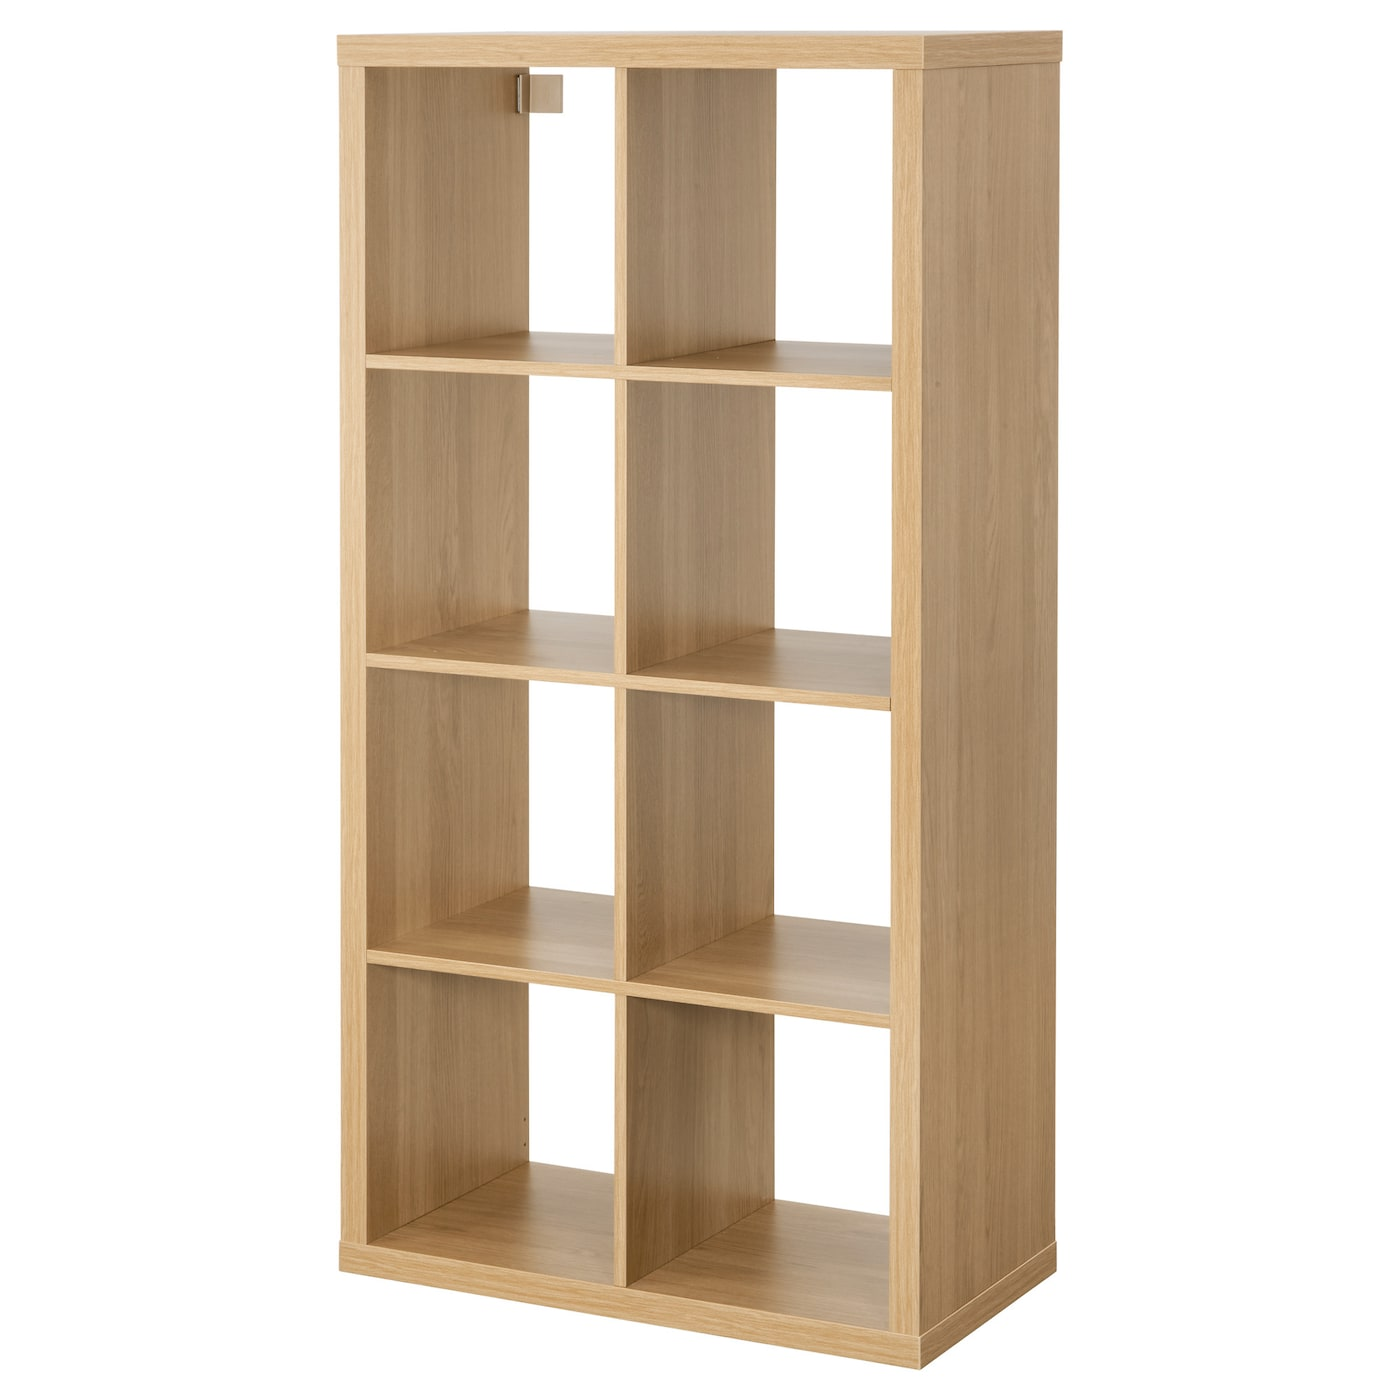 4x2 Cube Bookcase Storage Console 9 Colors 8 Shelf Tall Wood